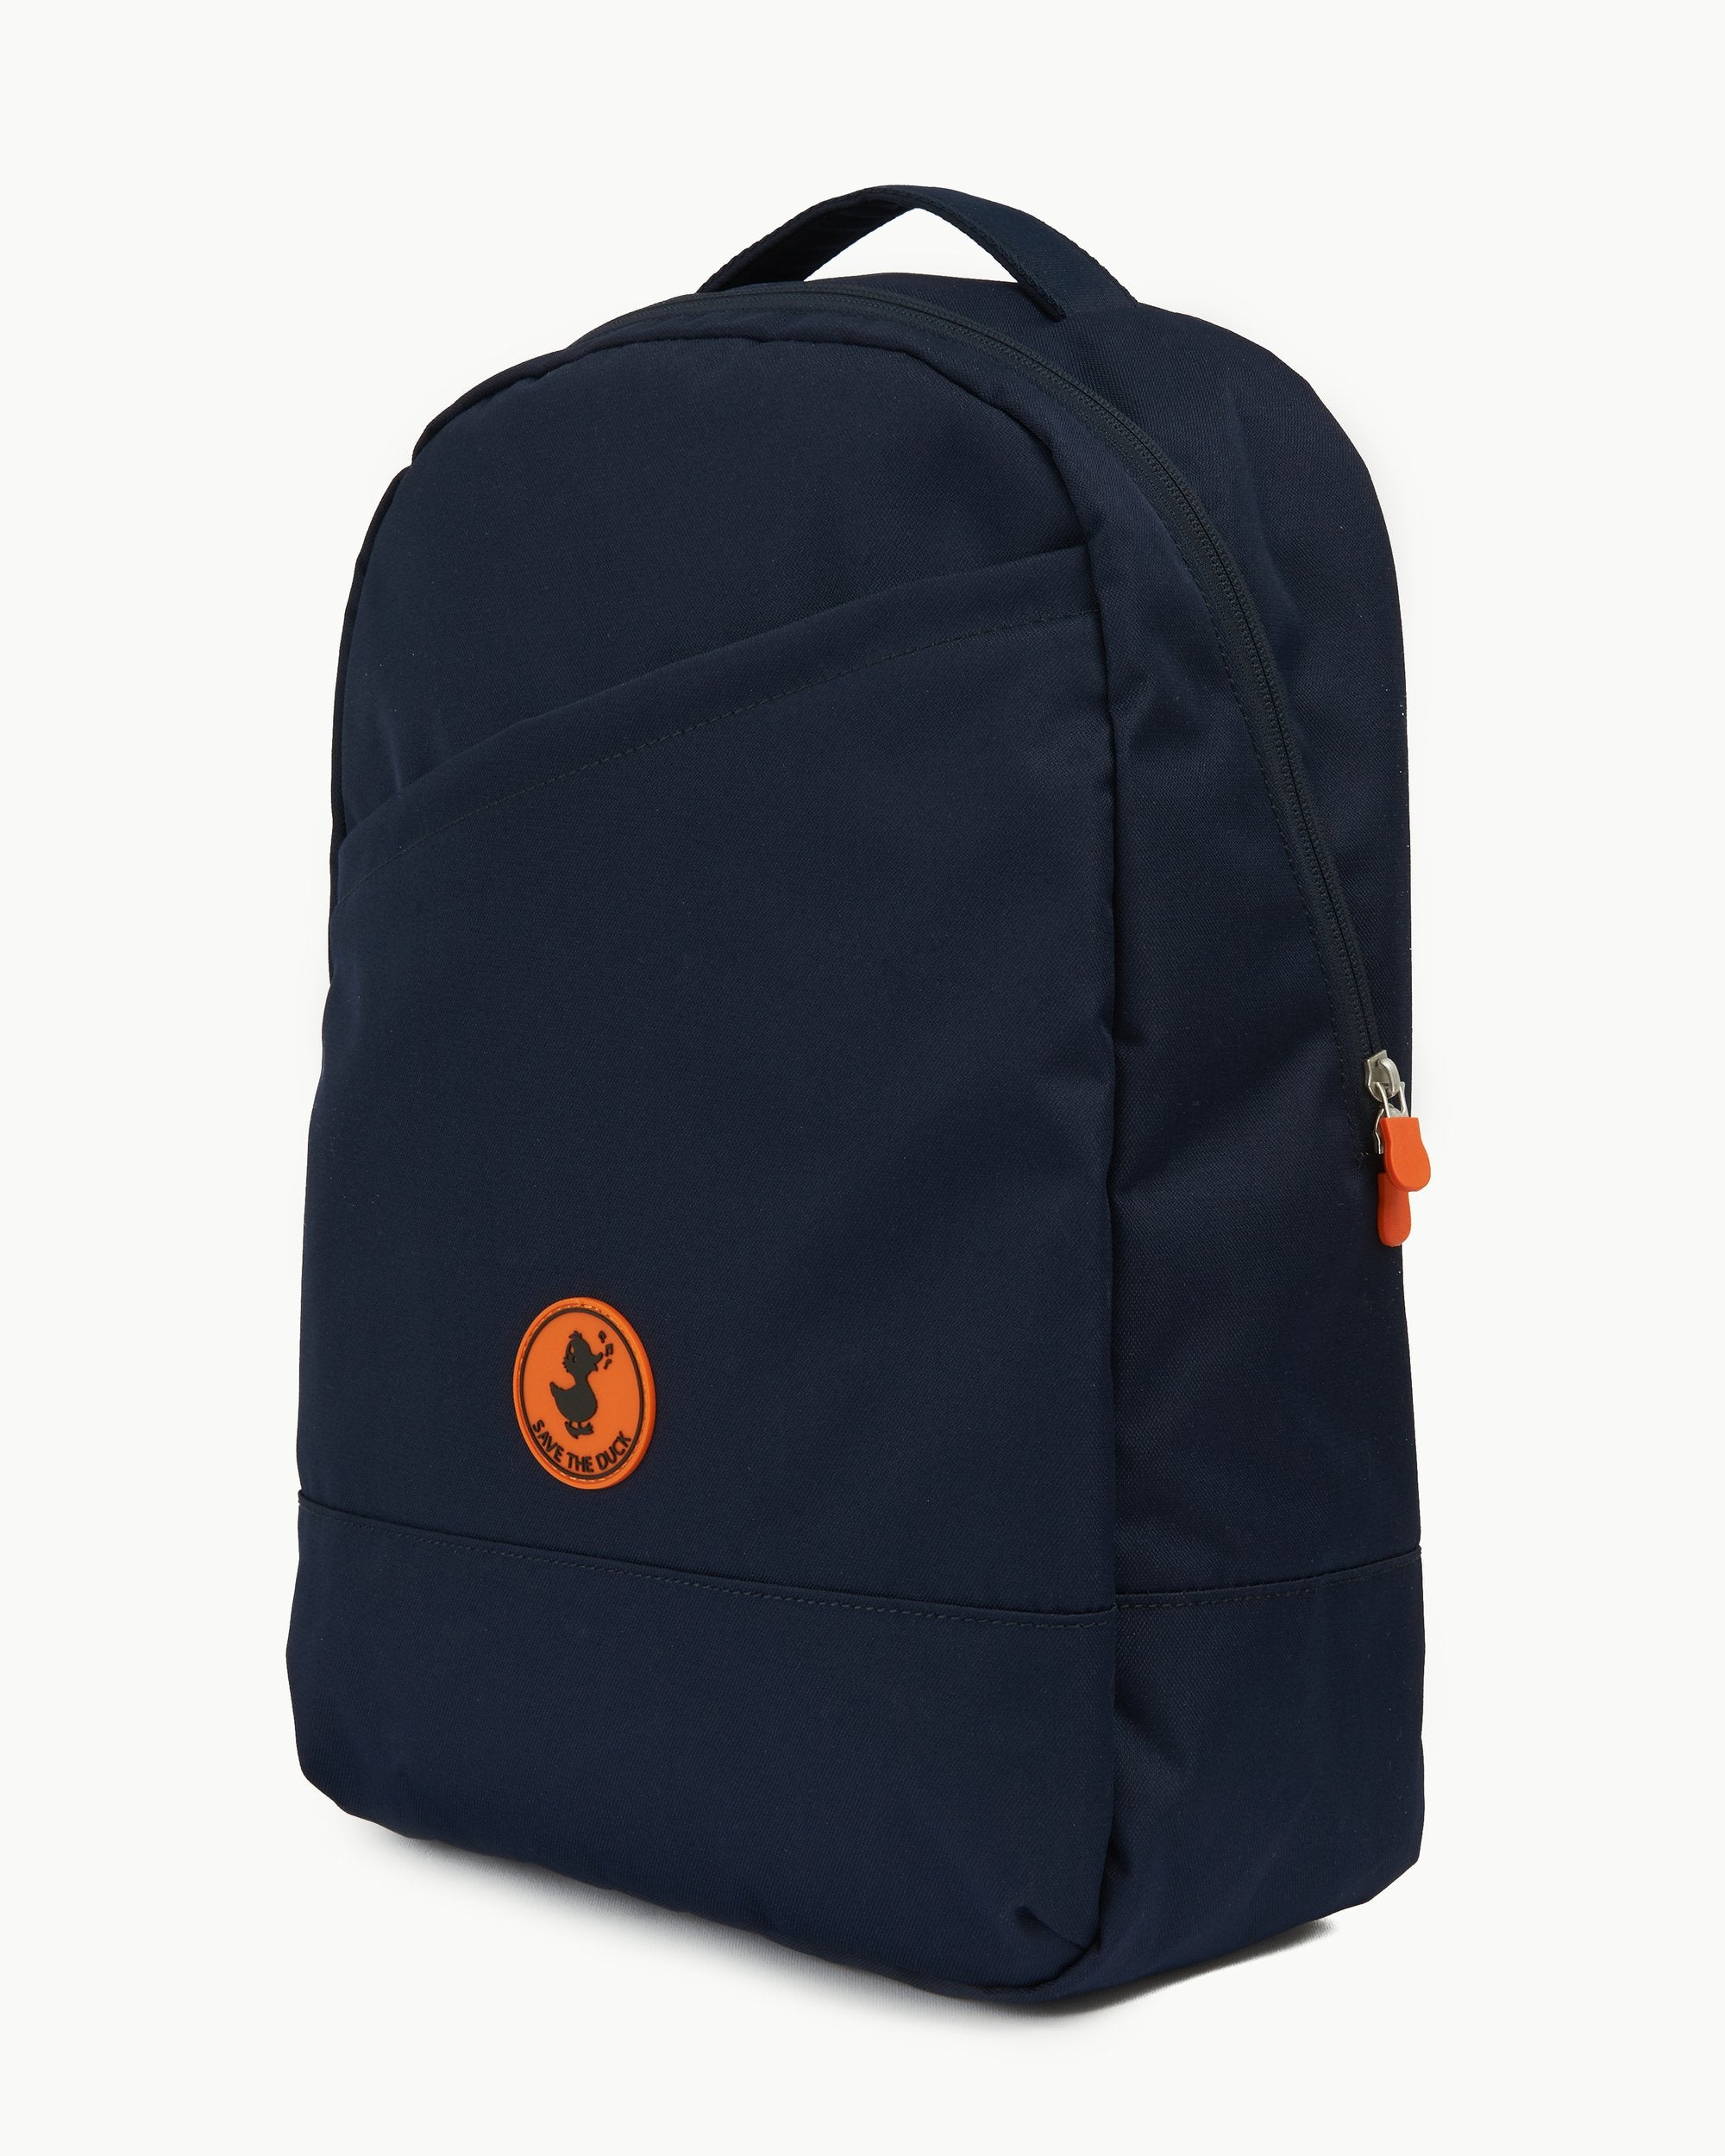 CRUELTY FREE BACKPACK MADE FROM RECYCLED PLASTIC BOTTLES Navy Blue